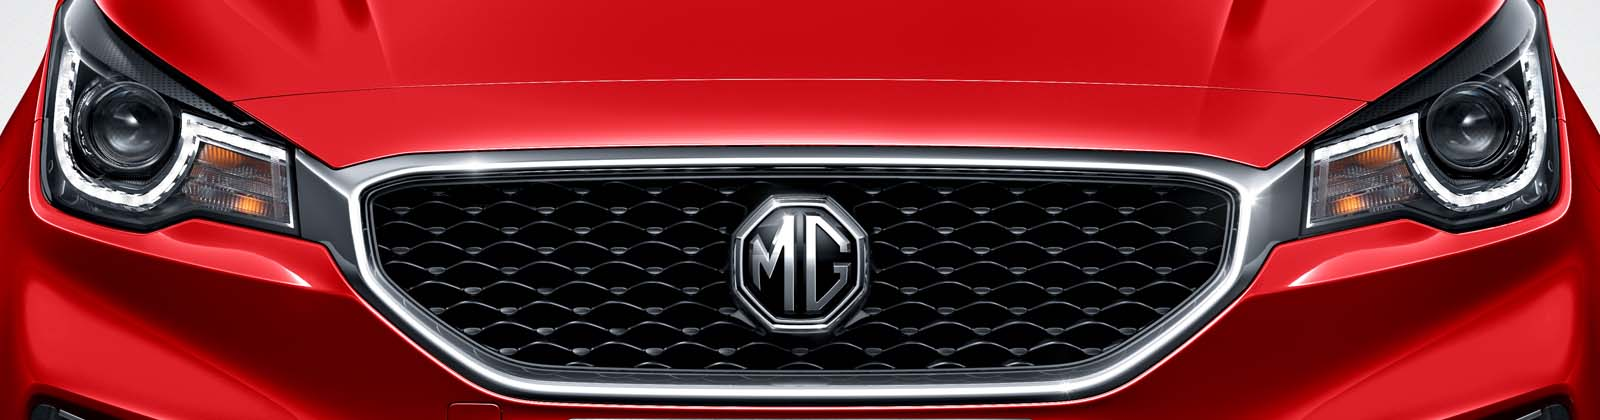 MG3 front grille